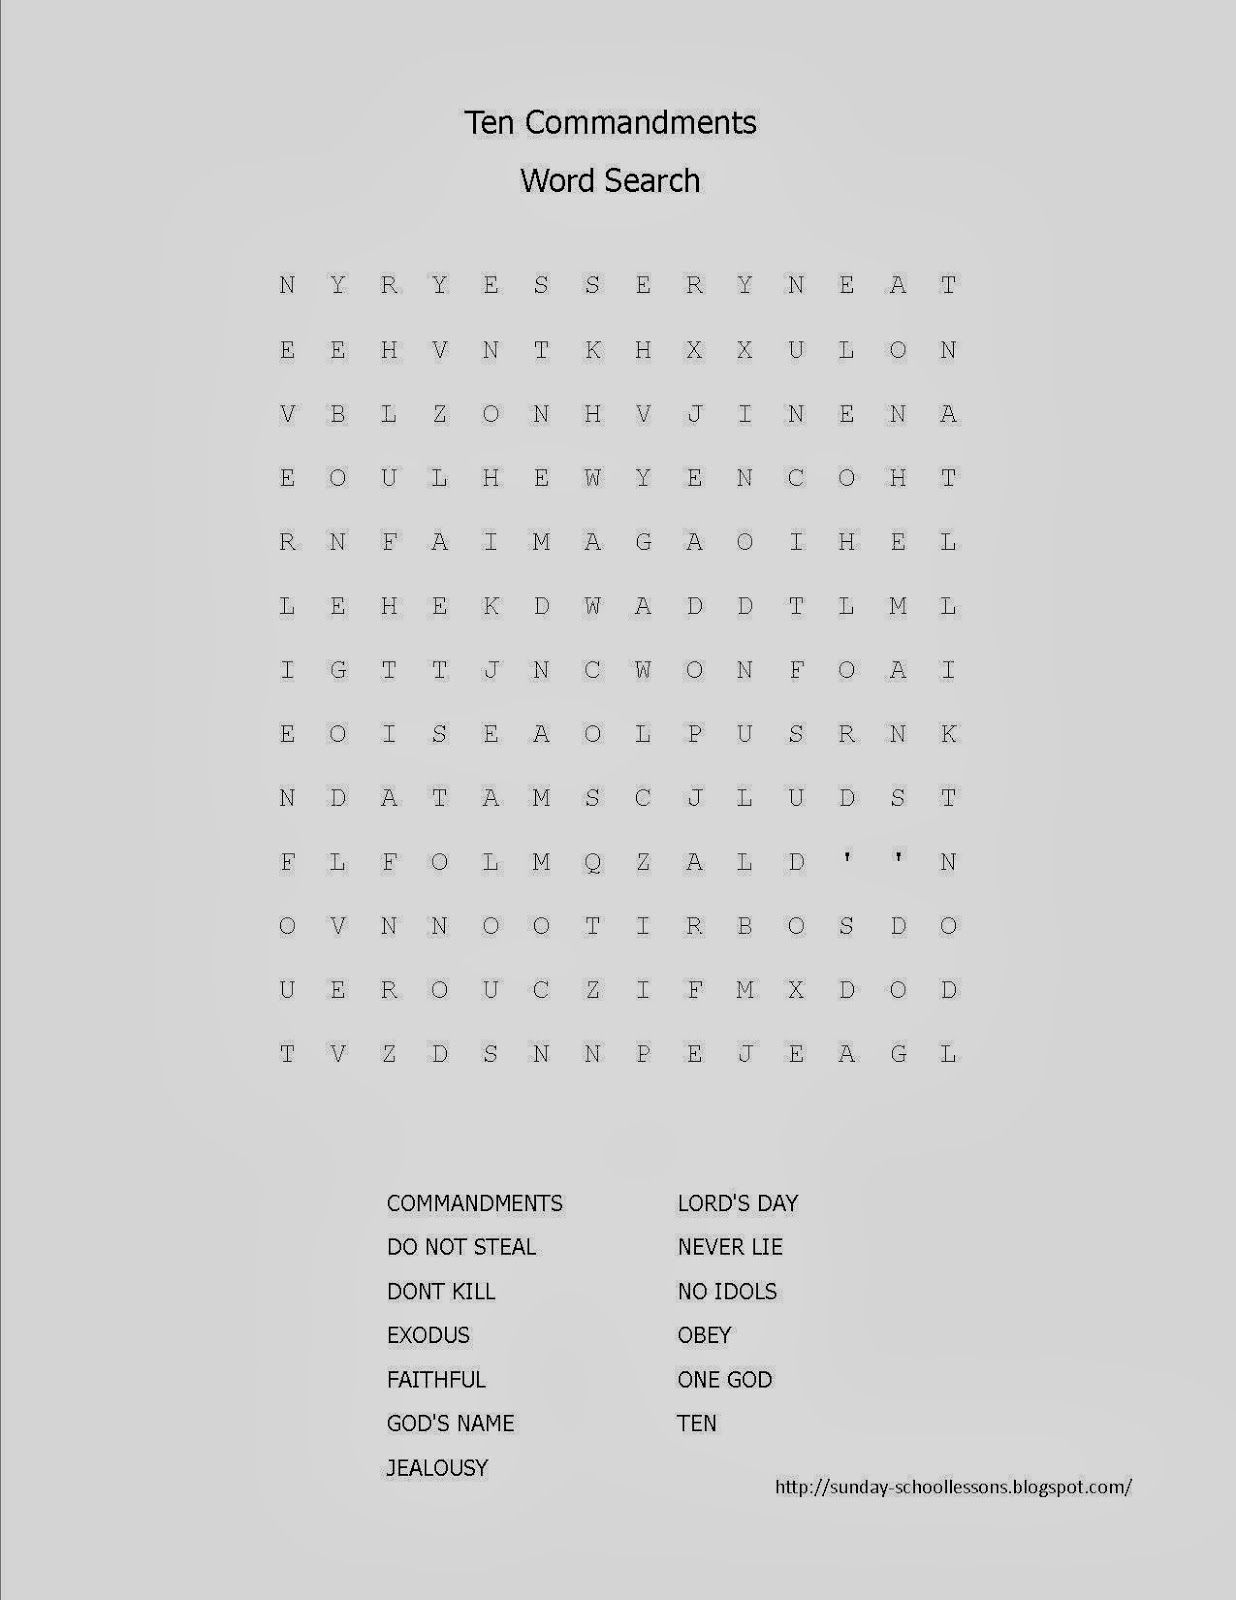 10 Commandments Word Search